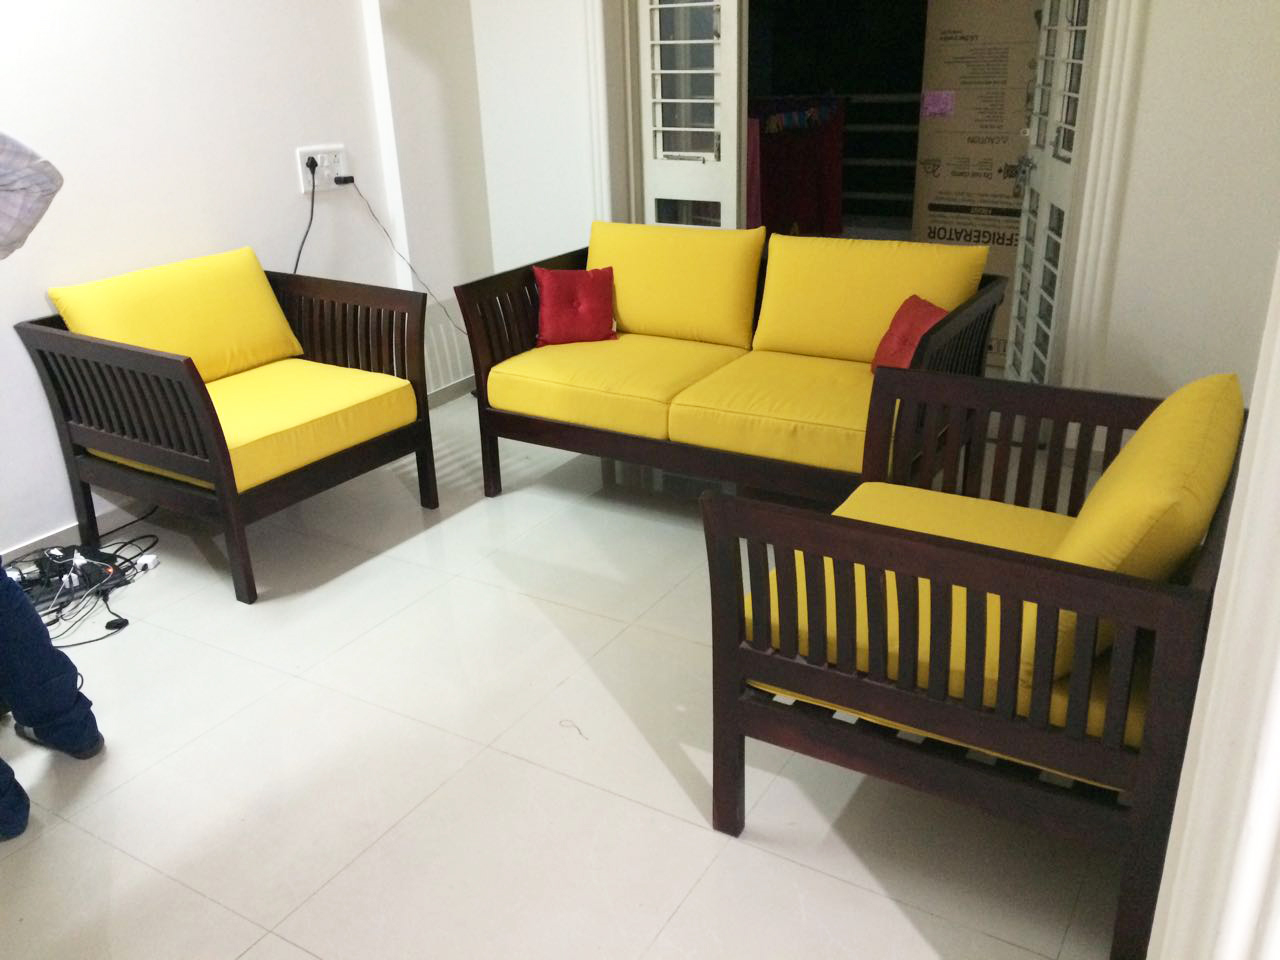 Used Sofa Set Olx Hyderabad Sofa Set Price Below 5000 In Chennai Buy Sectional Sofa